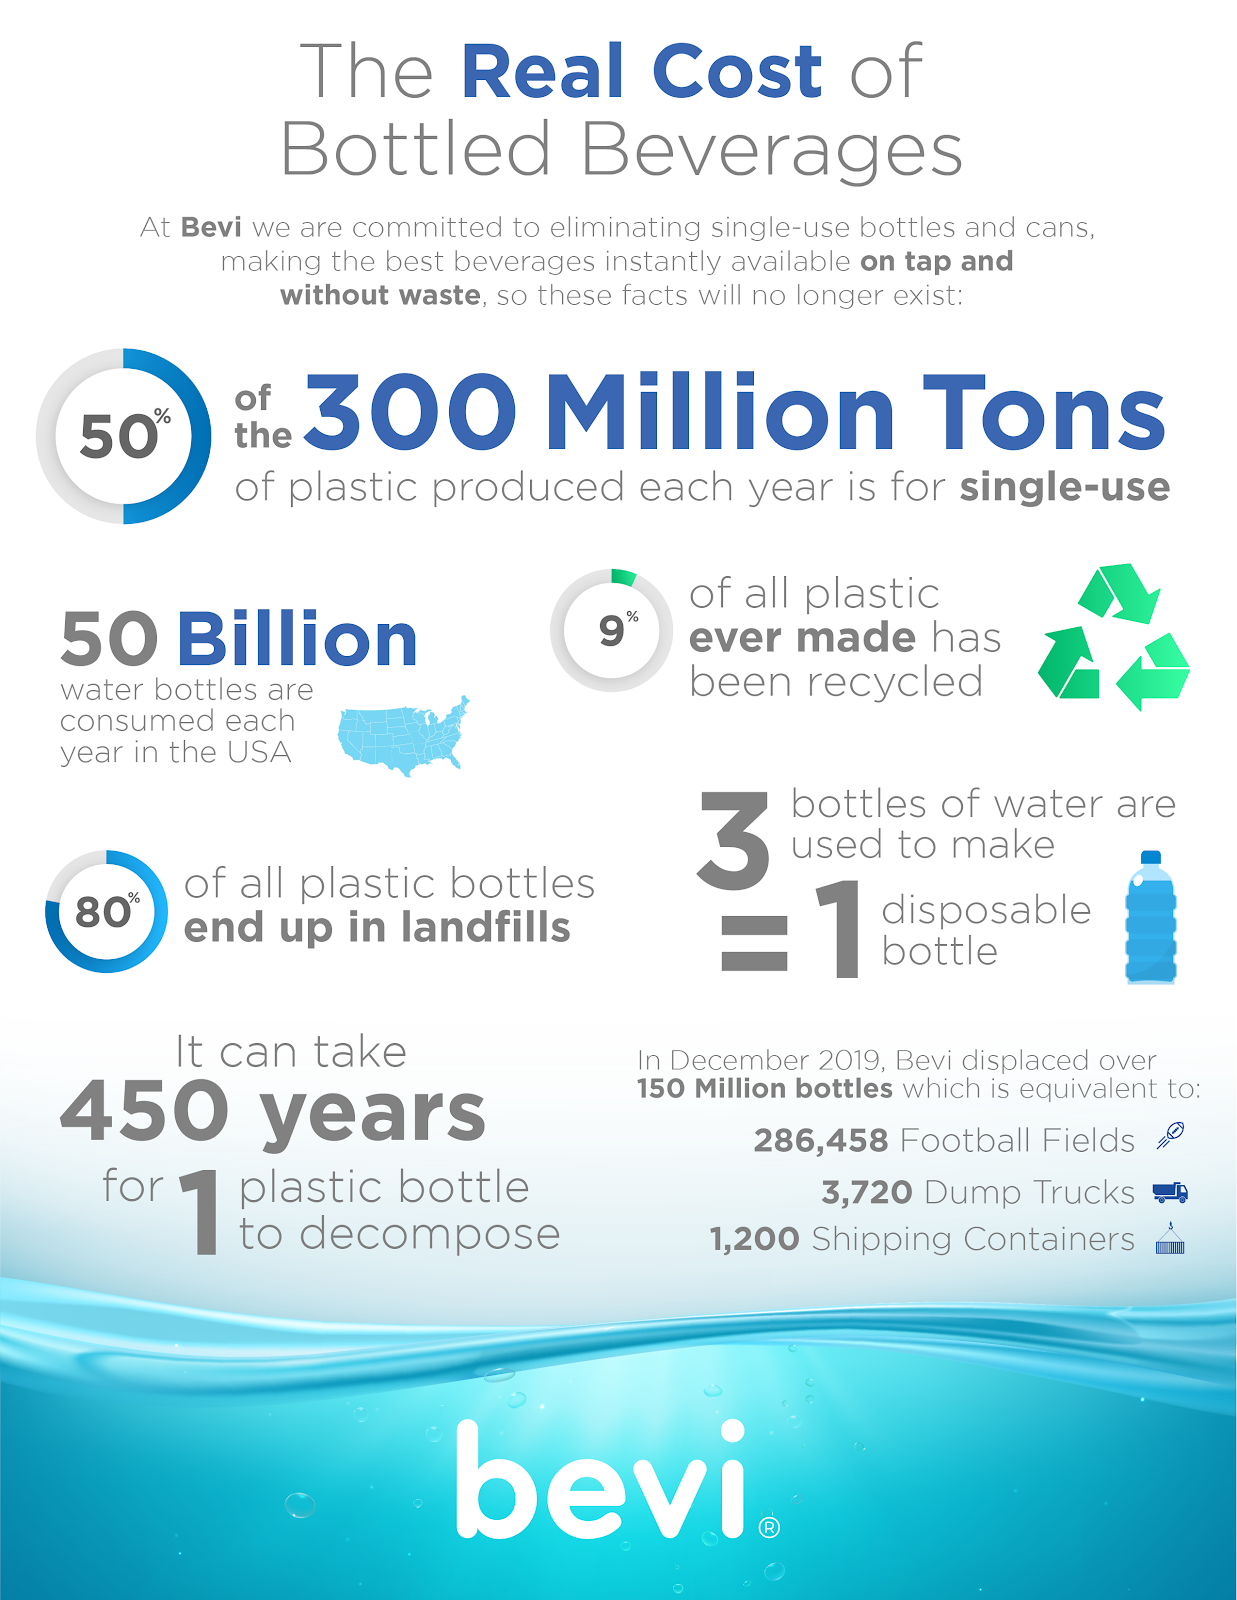 bottled water and bottled beverages waste and pollutions stats, statistics